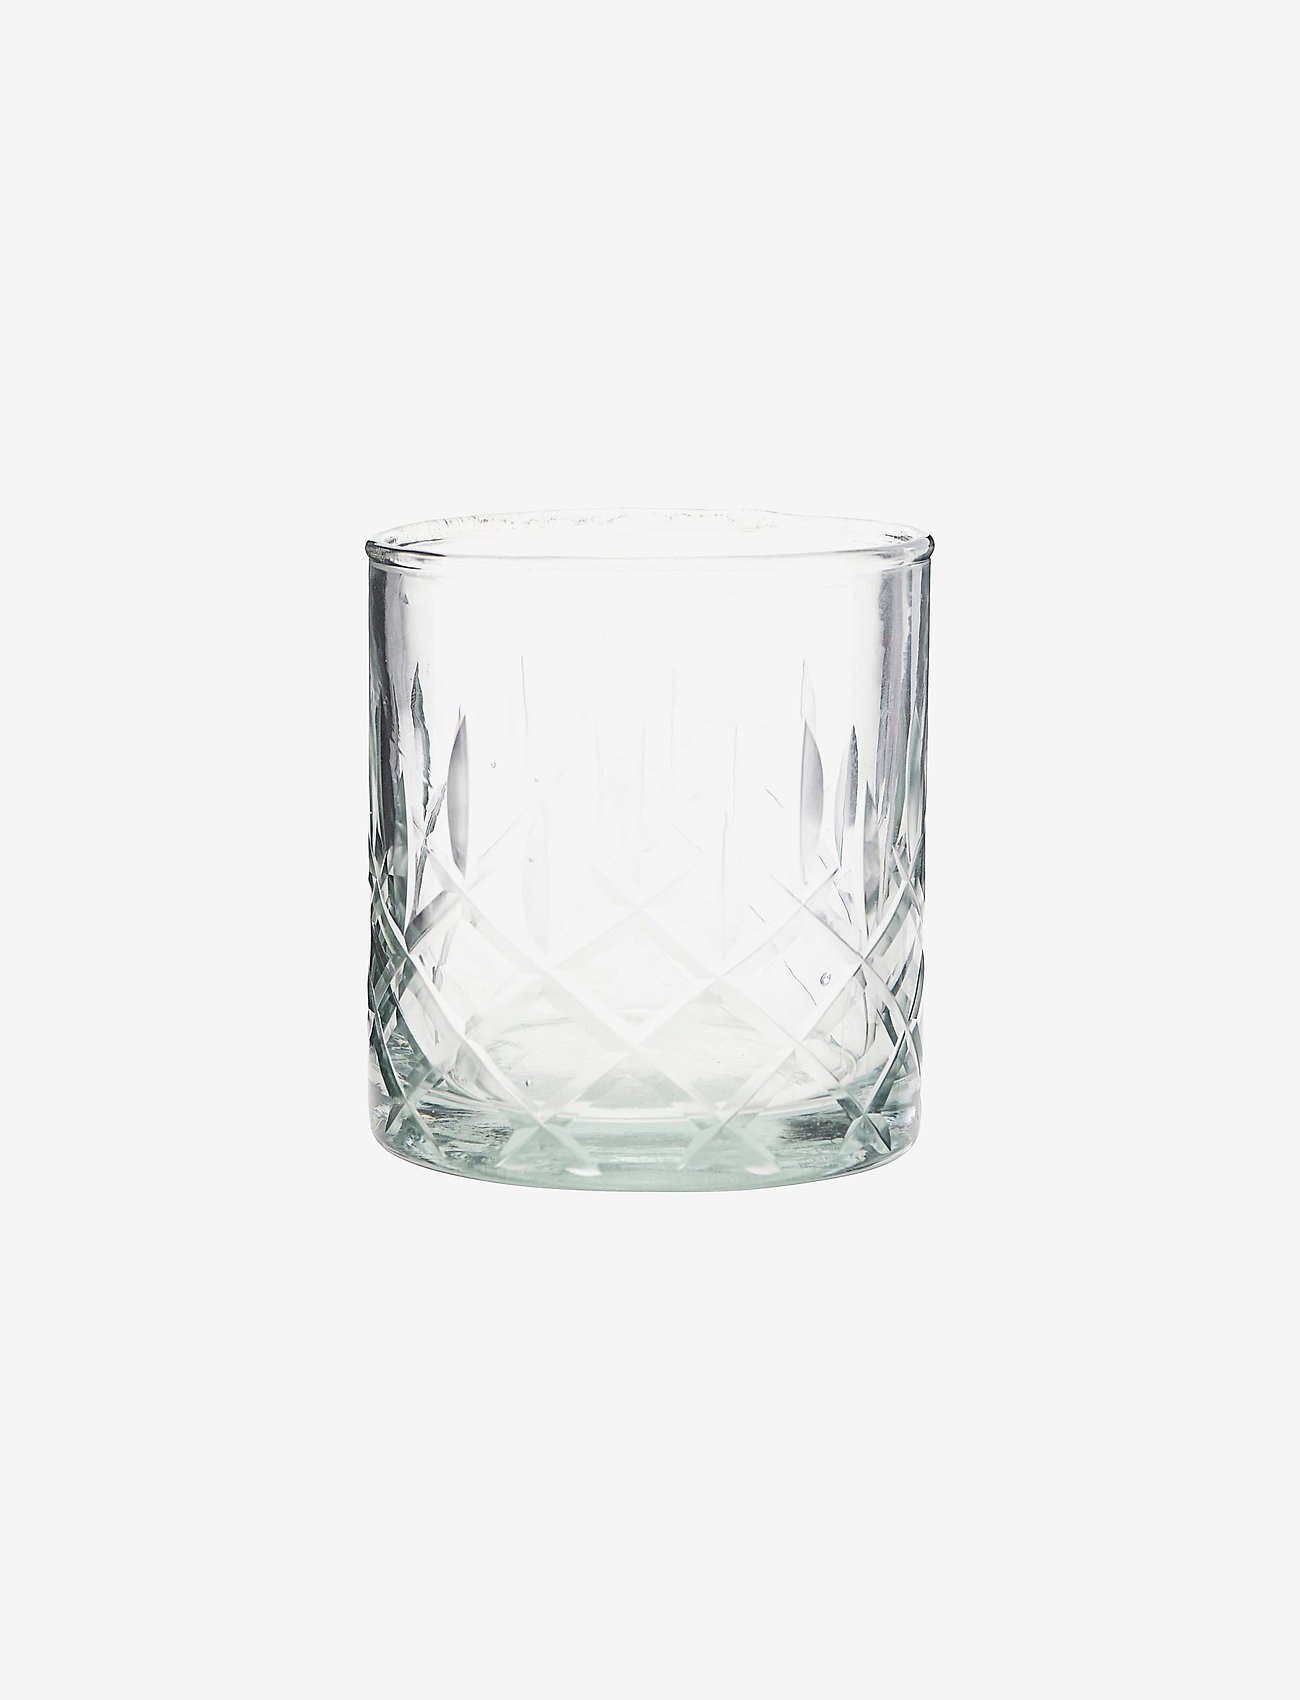 house doctor - Vintage Whisky glass - whiskyglass & cognacglass - no color - 0